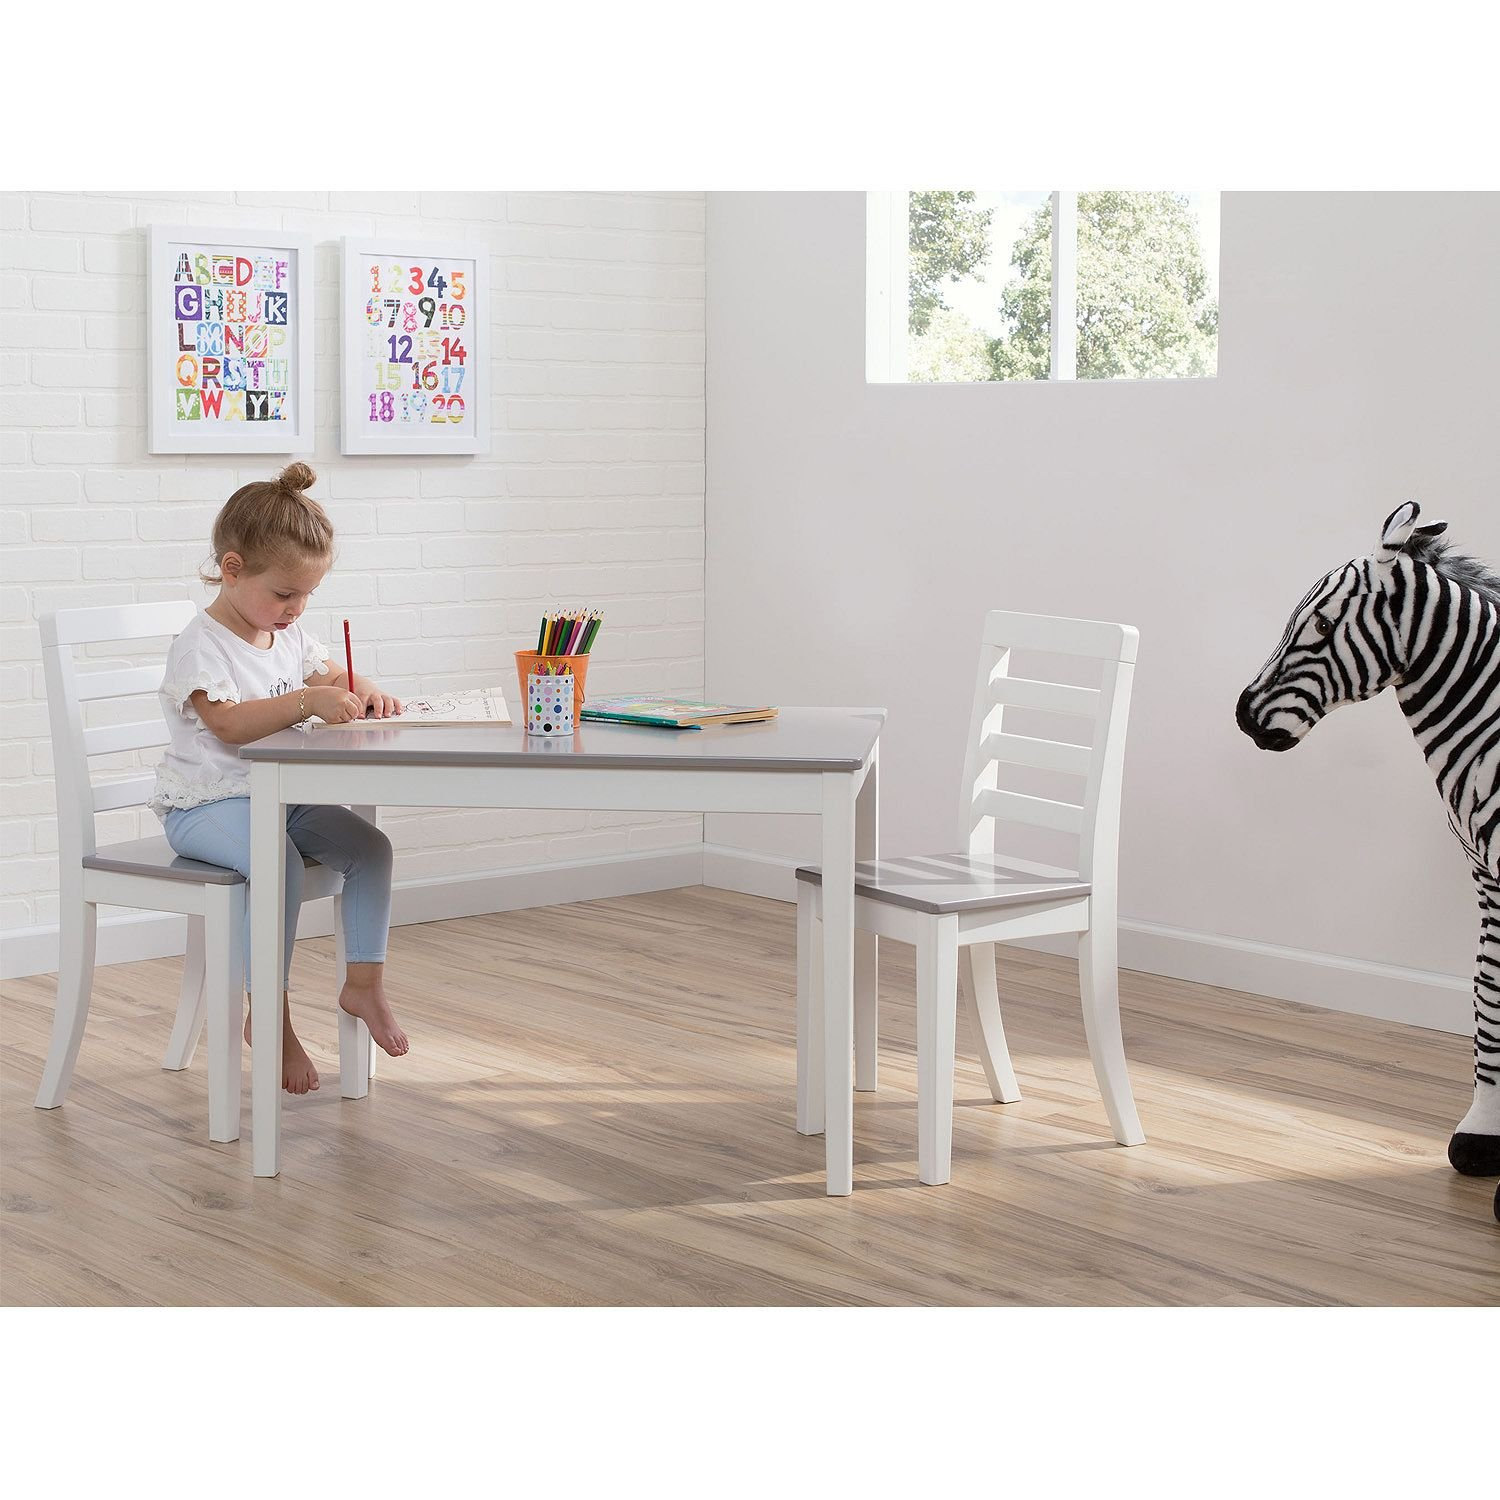 Delta Children Table and Chairs, 3-Piece Set (White and Grey) by Delta Children (Image #3)